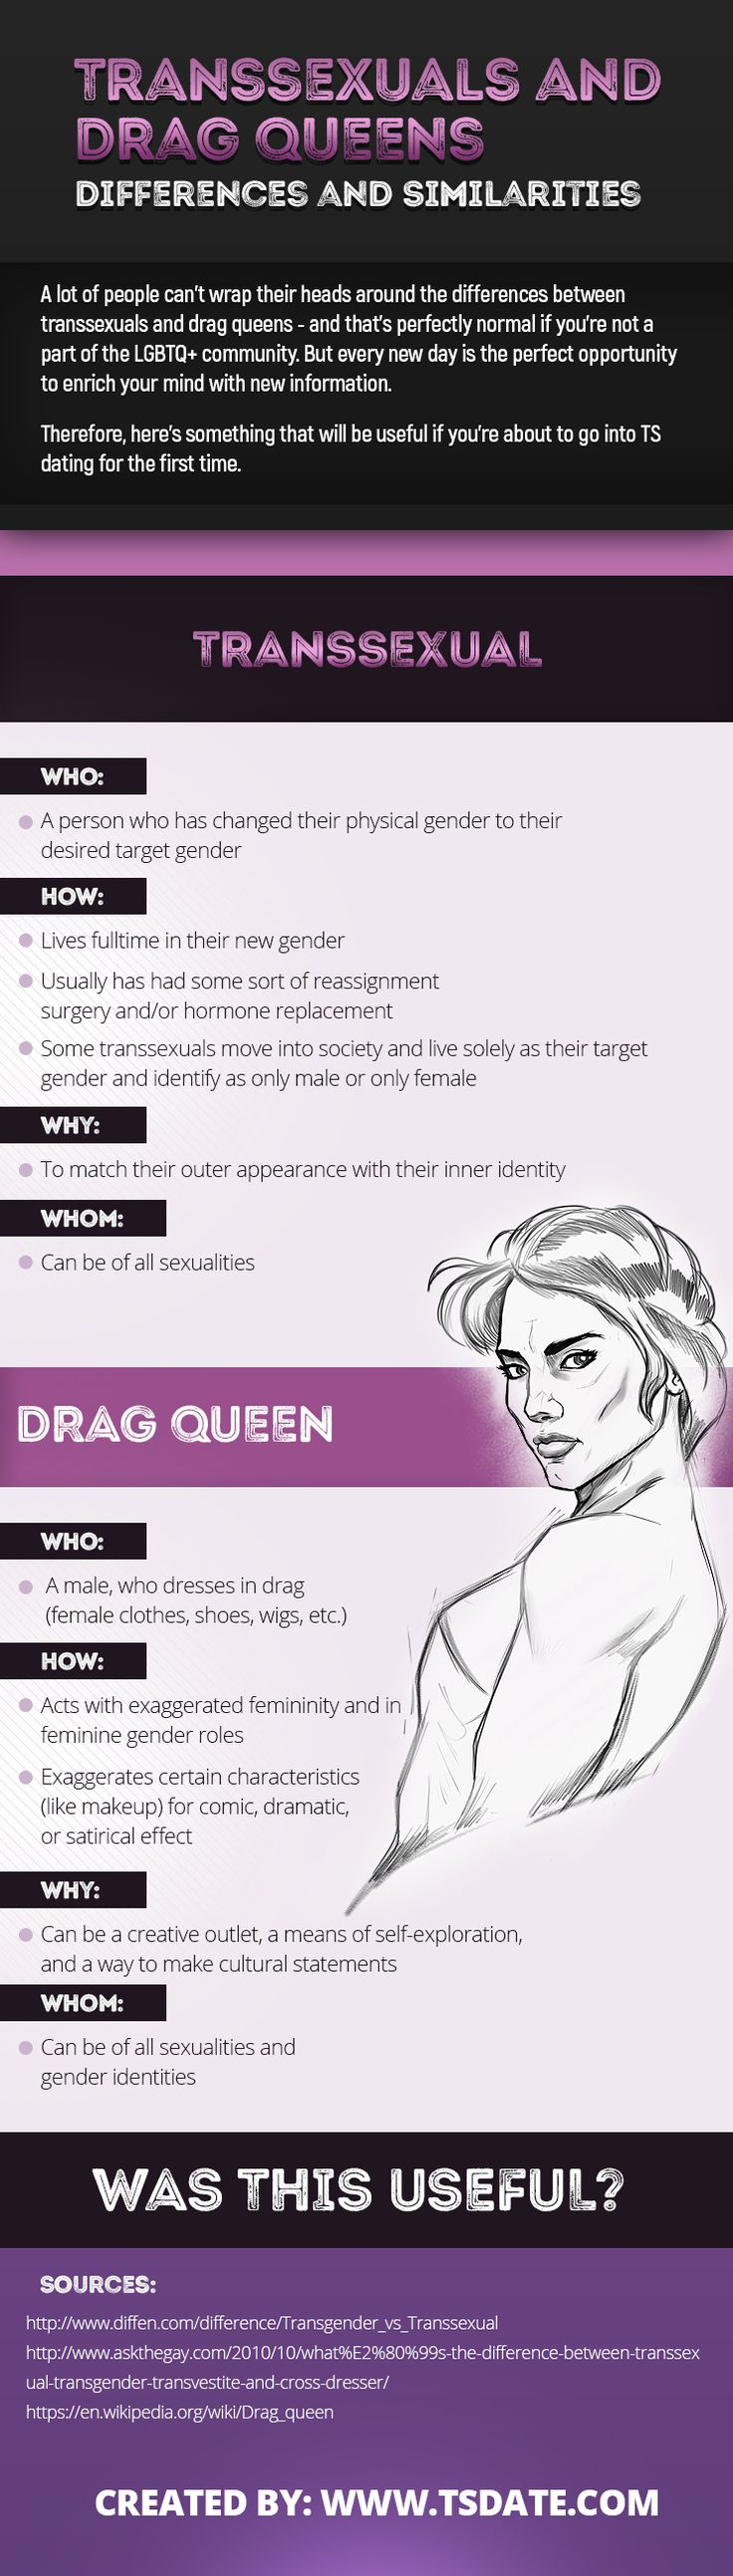 Drag queen dating sites